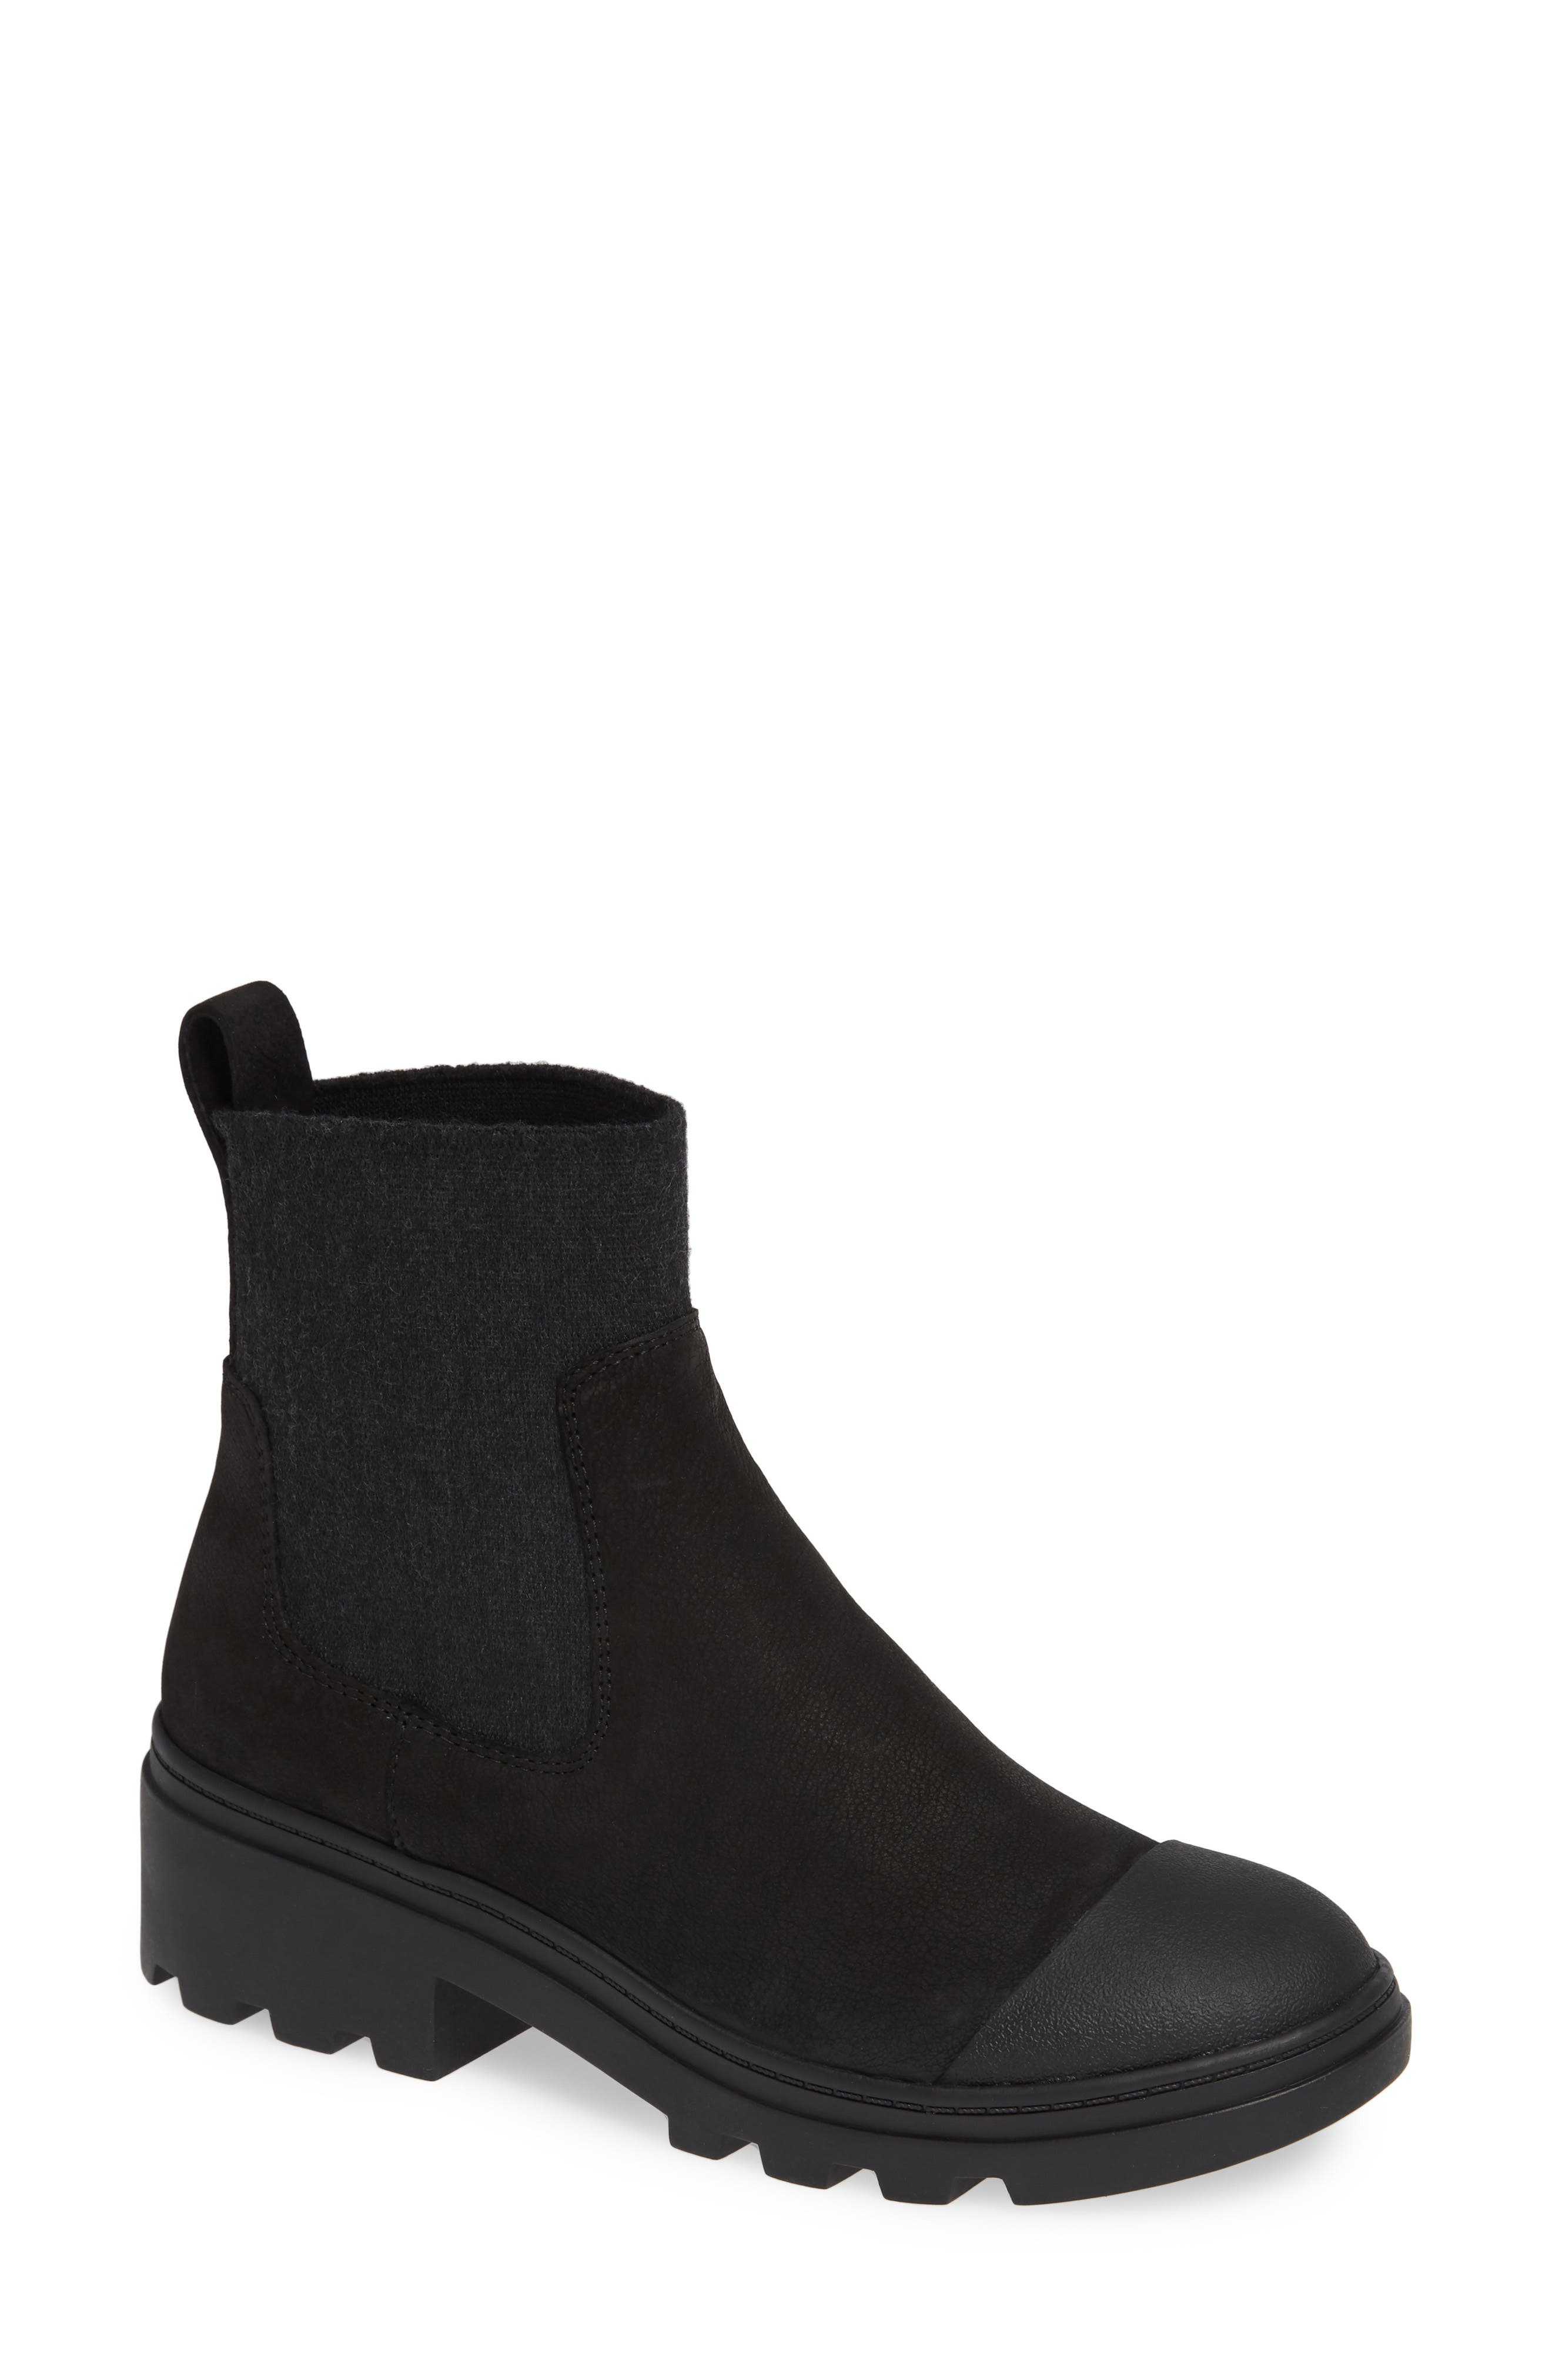 EILEEN FISHER Teddy Bootie, Main, color, 001